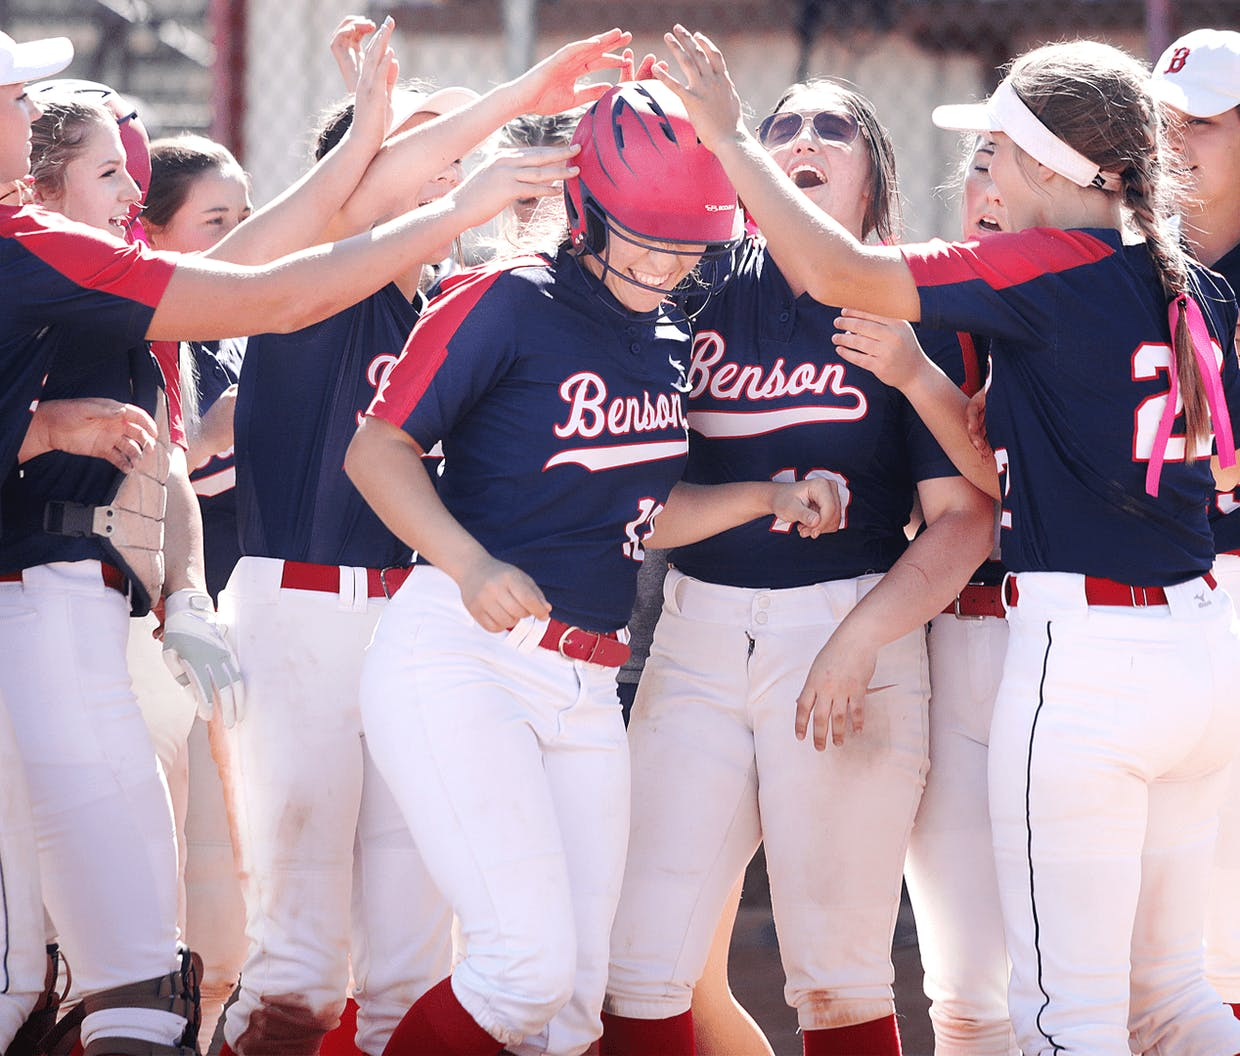 Teresa Garza, senior, is mobbed after clouting a solo shot in Saturday's game in Benson against Payson.